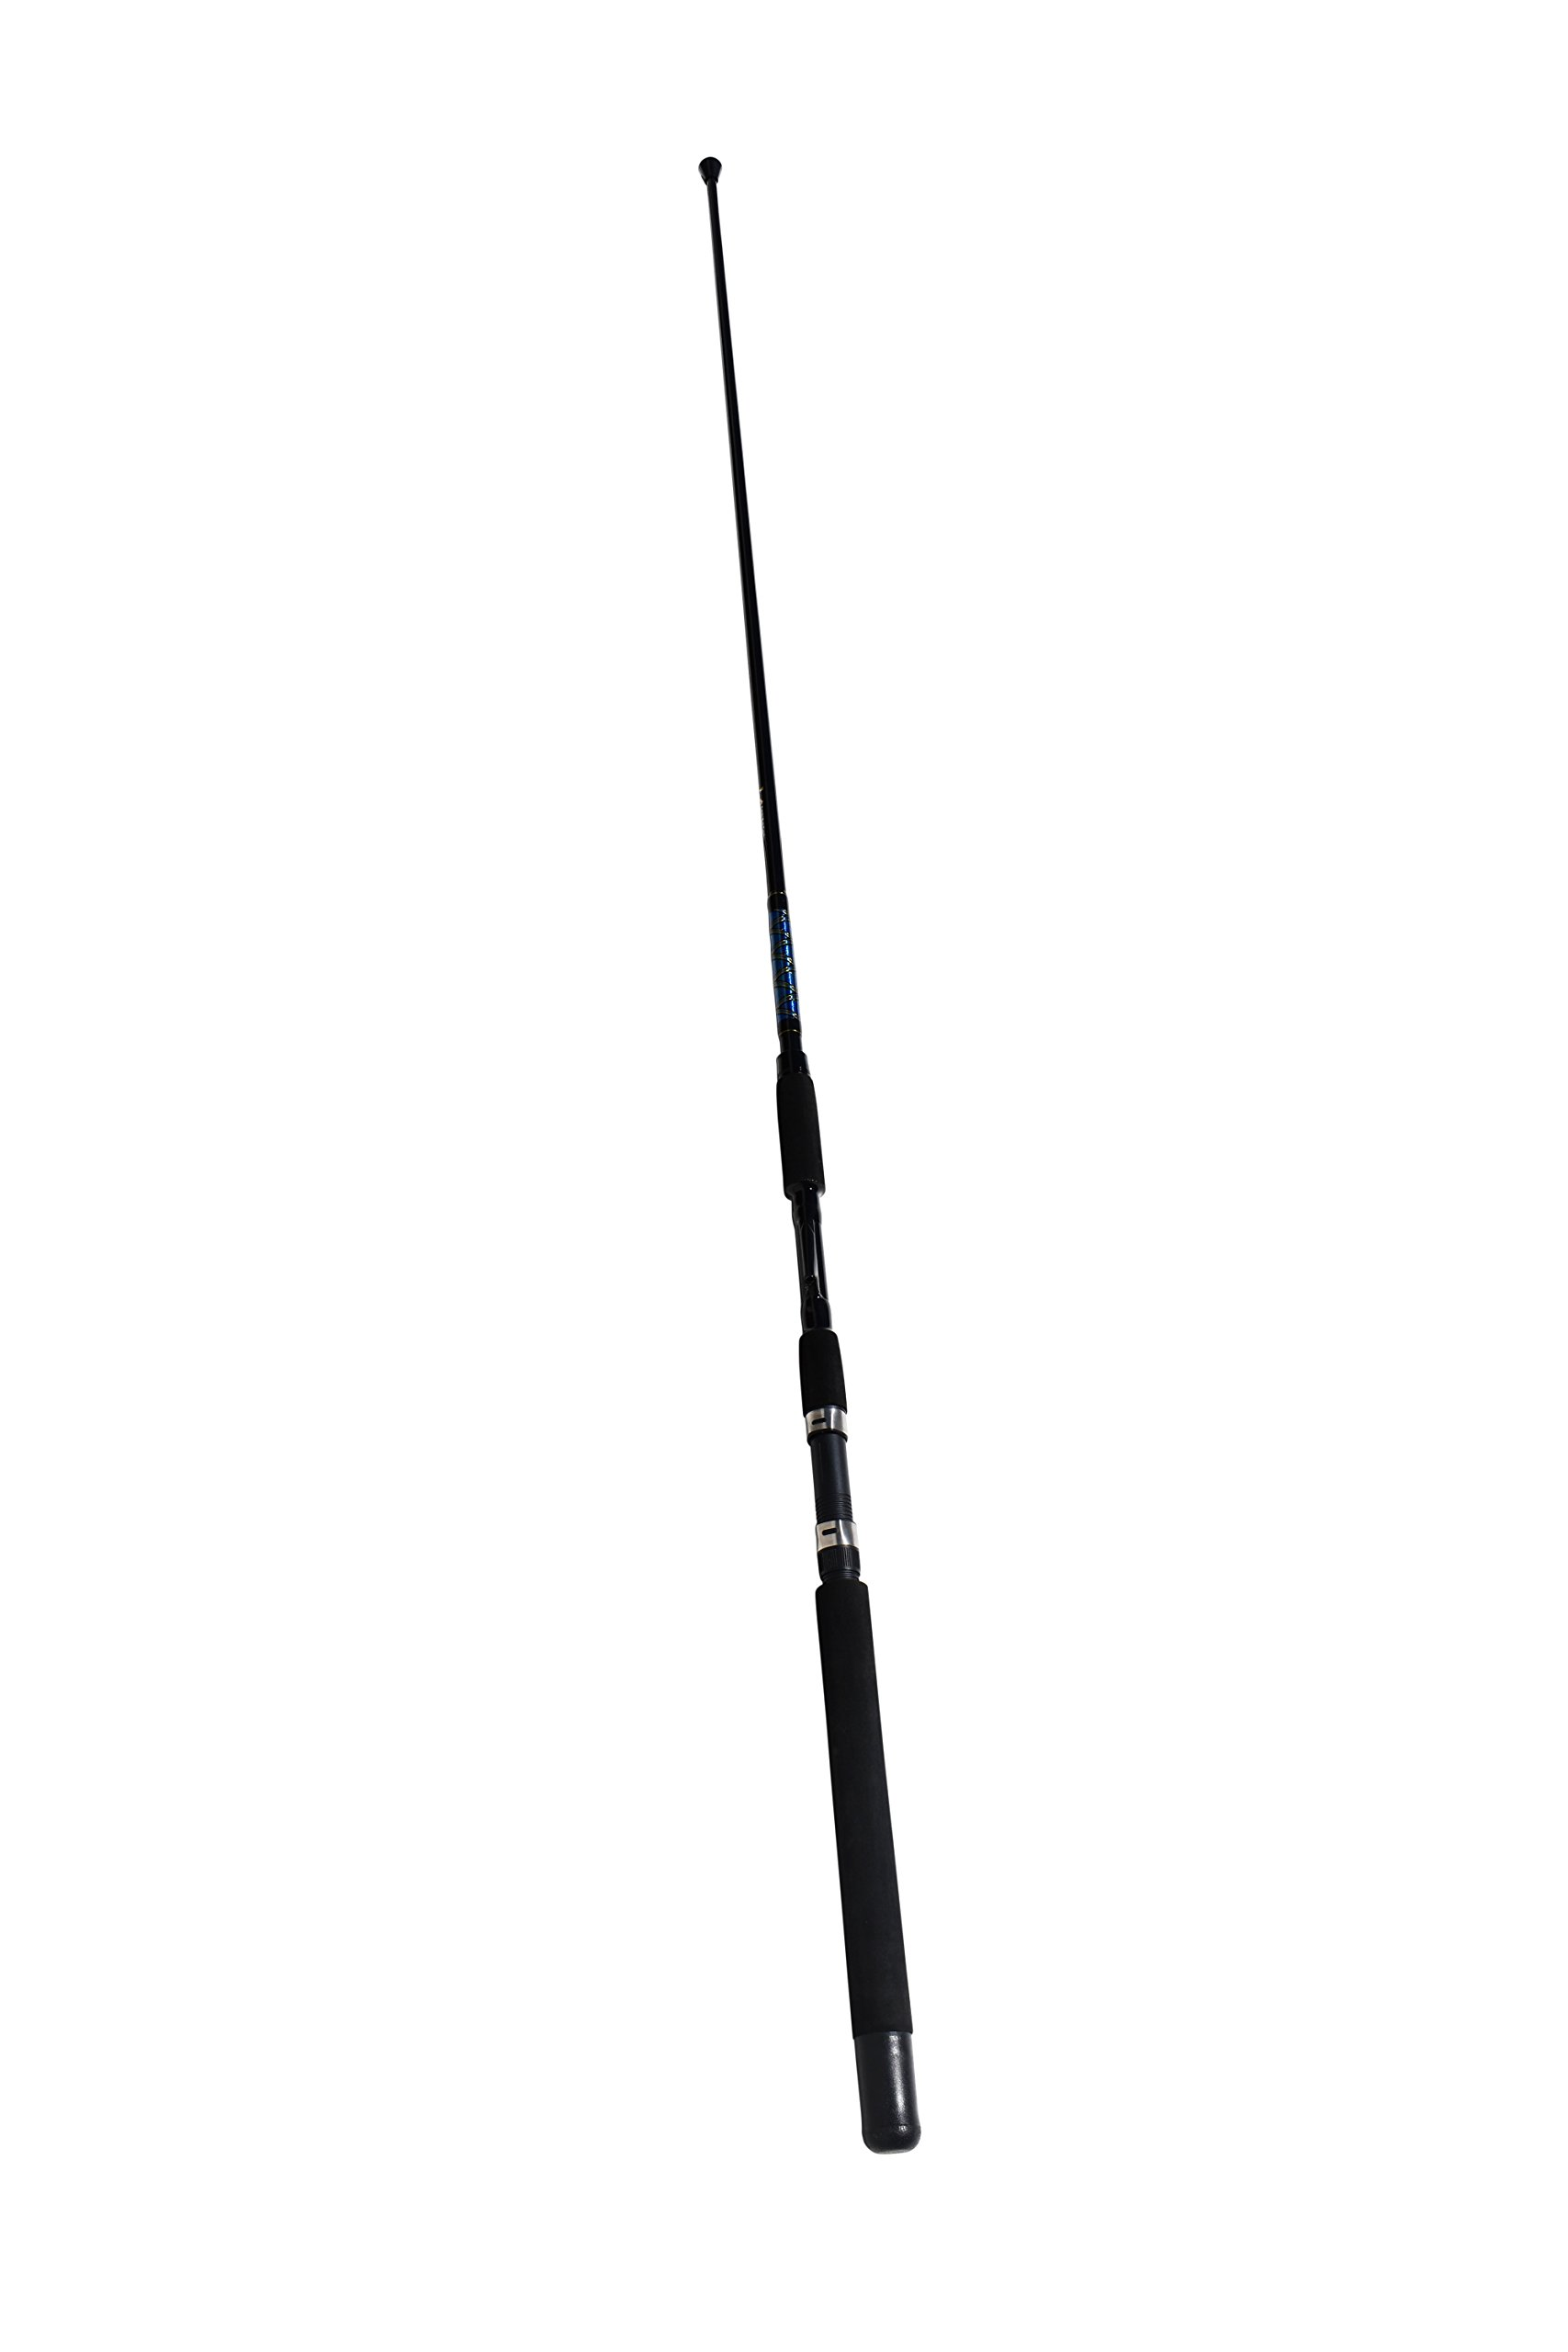 Sabiki Fishing Rod Bait Rod 7 Foot Long Saltwater Fishing Pole!!! by EAT MY TACKLE